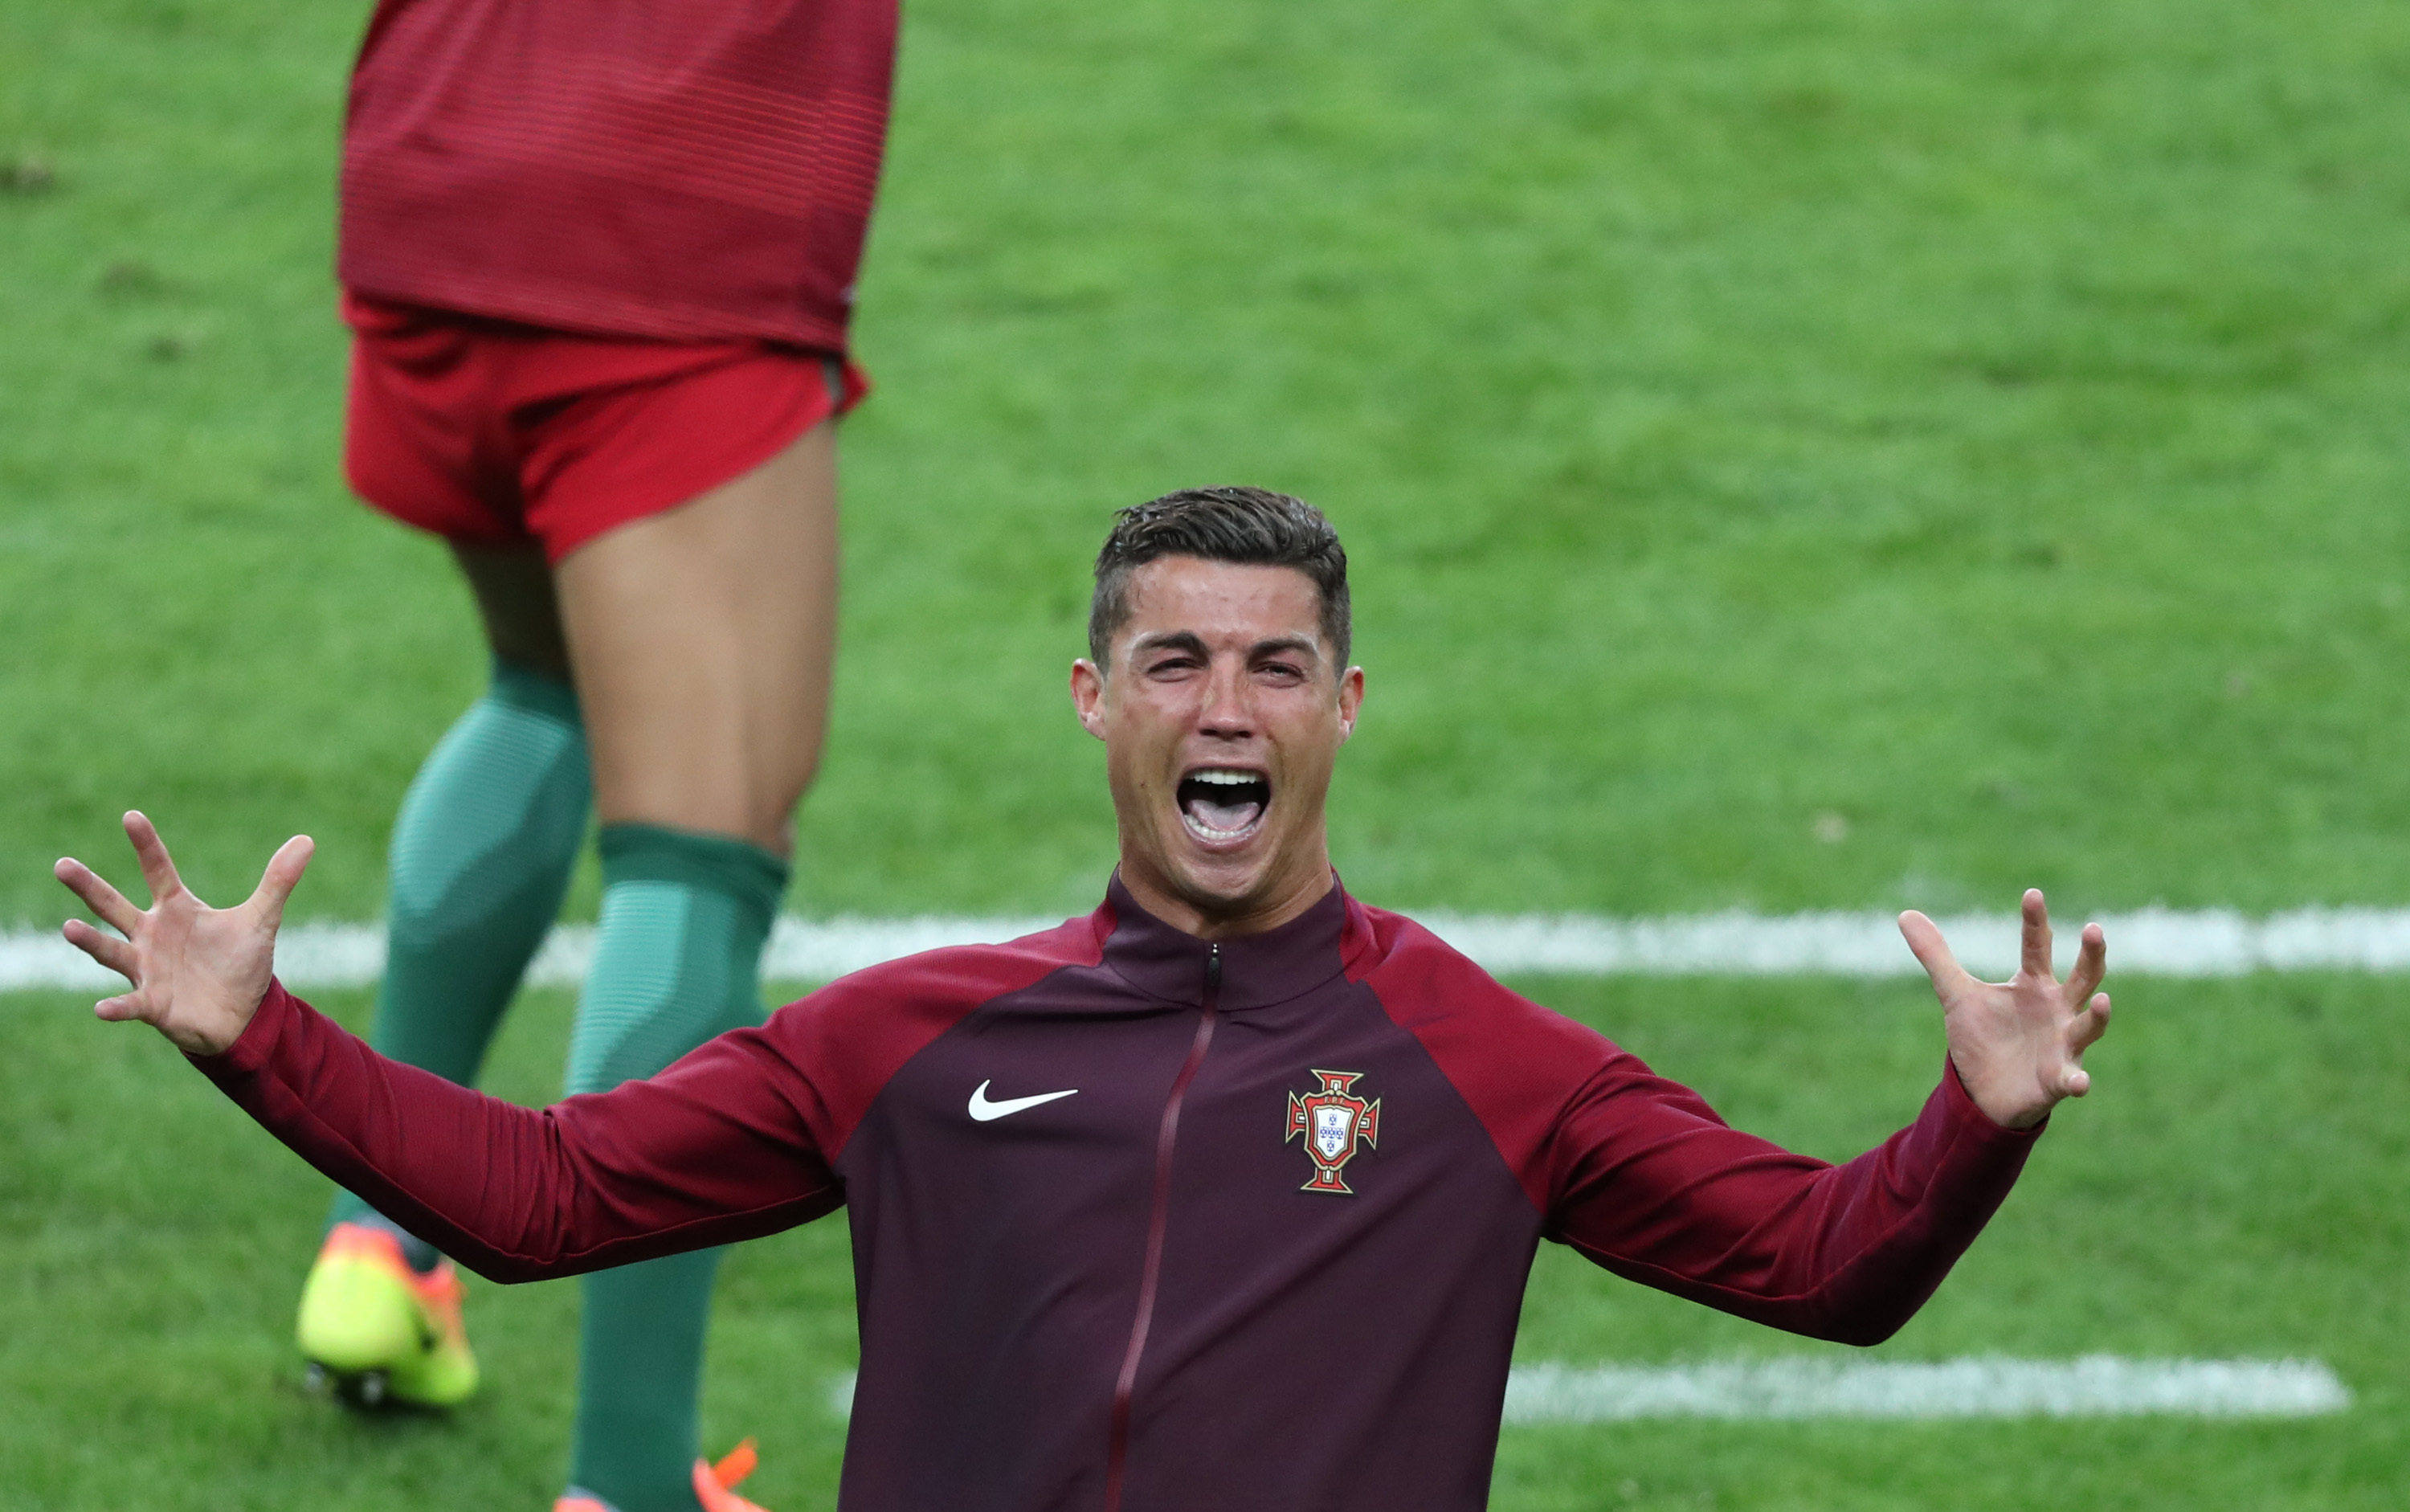 Ronaldo roars in excitement as Portugal clinch the victory. Image: PA